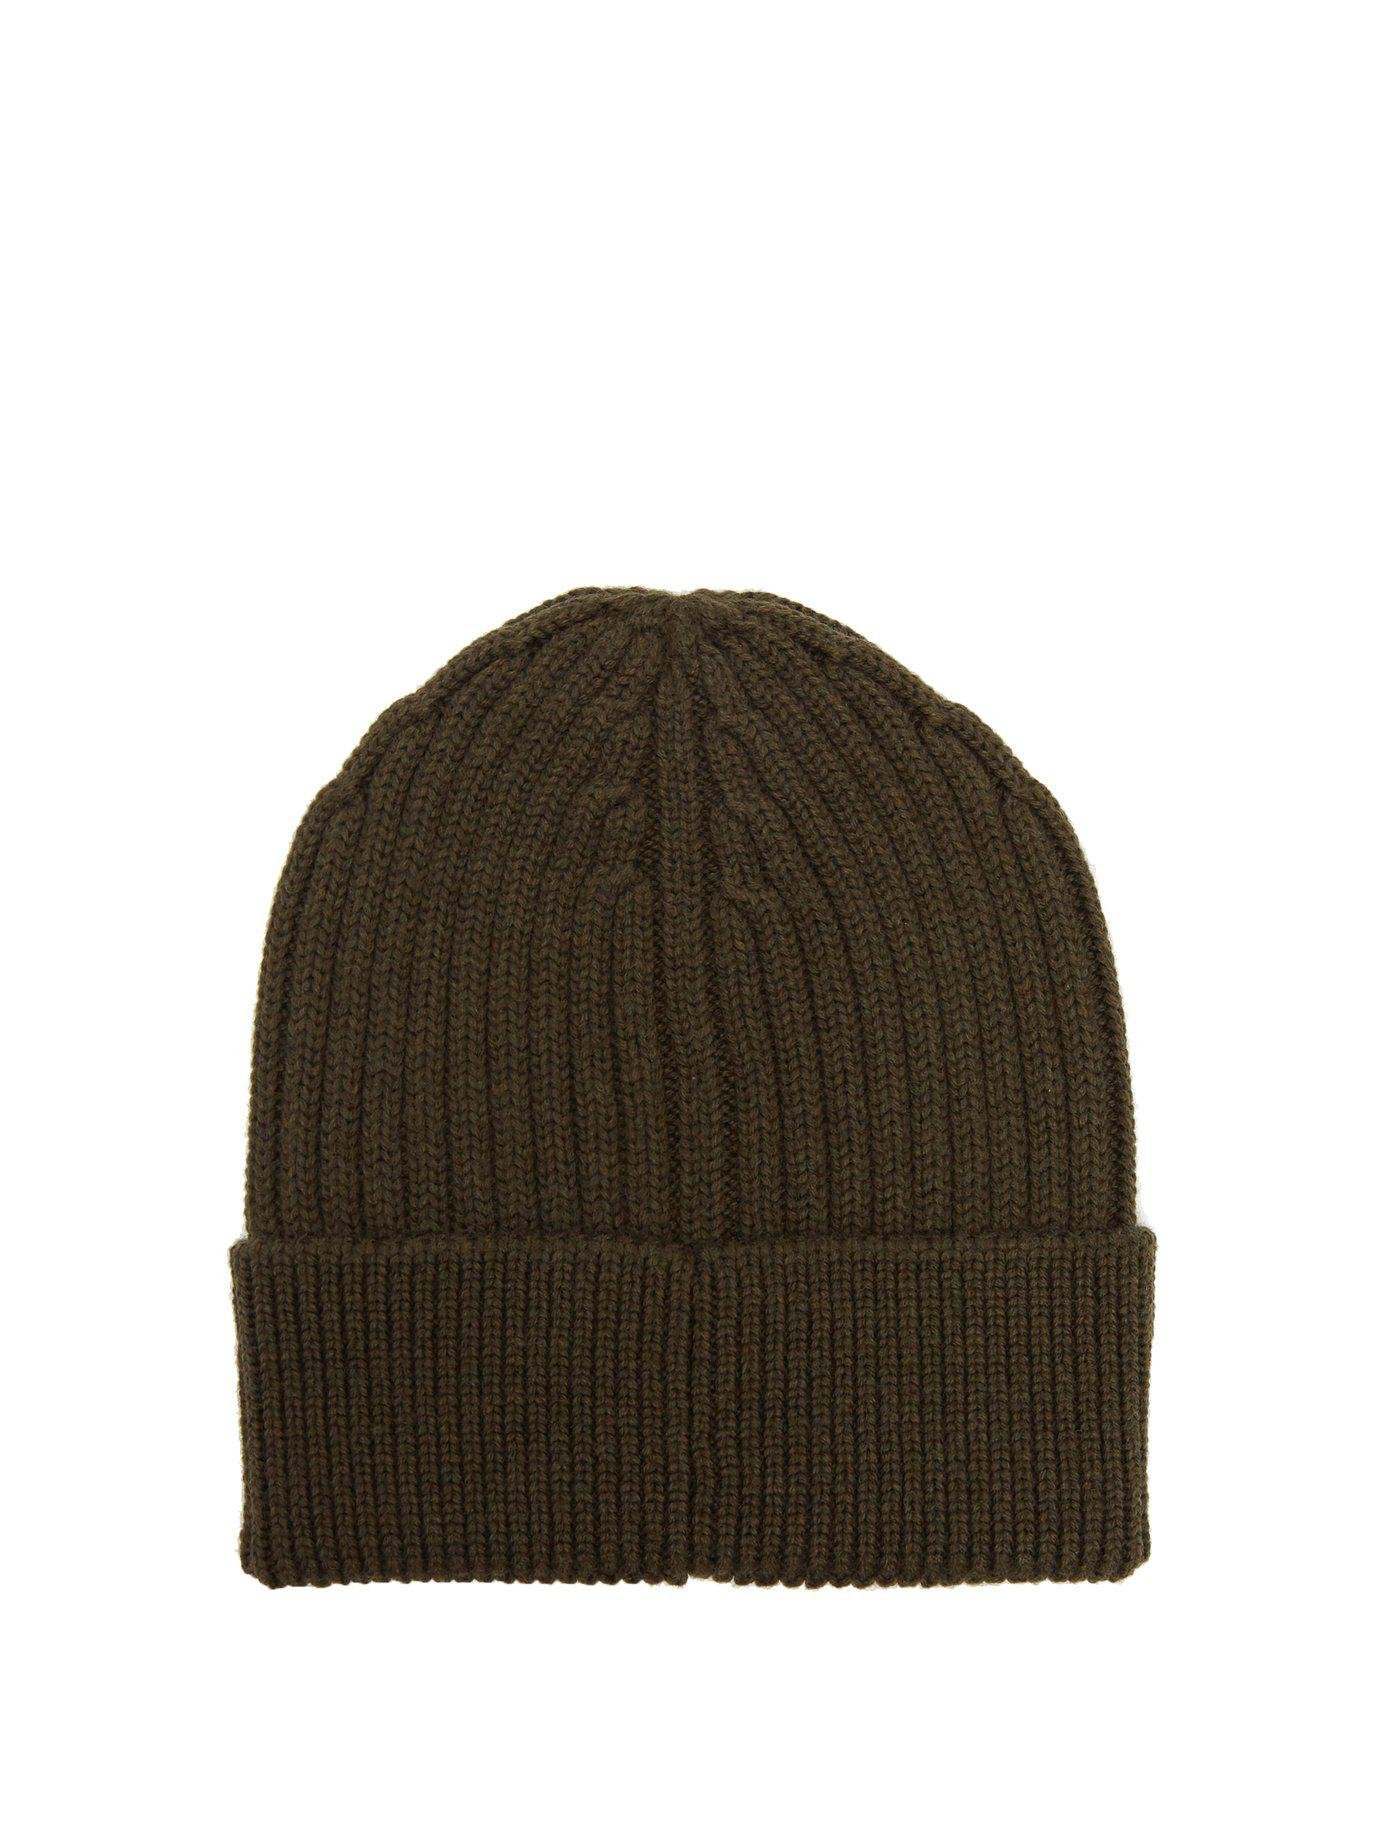 3e0236d1cfe Lyst - Moncler Grenoble Logo Embroidered Wool Beanie Hat for Men